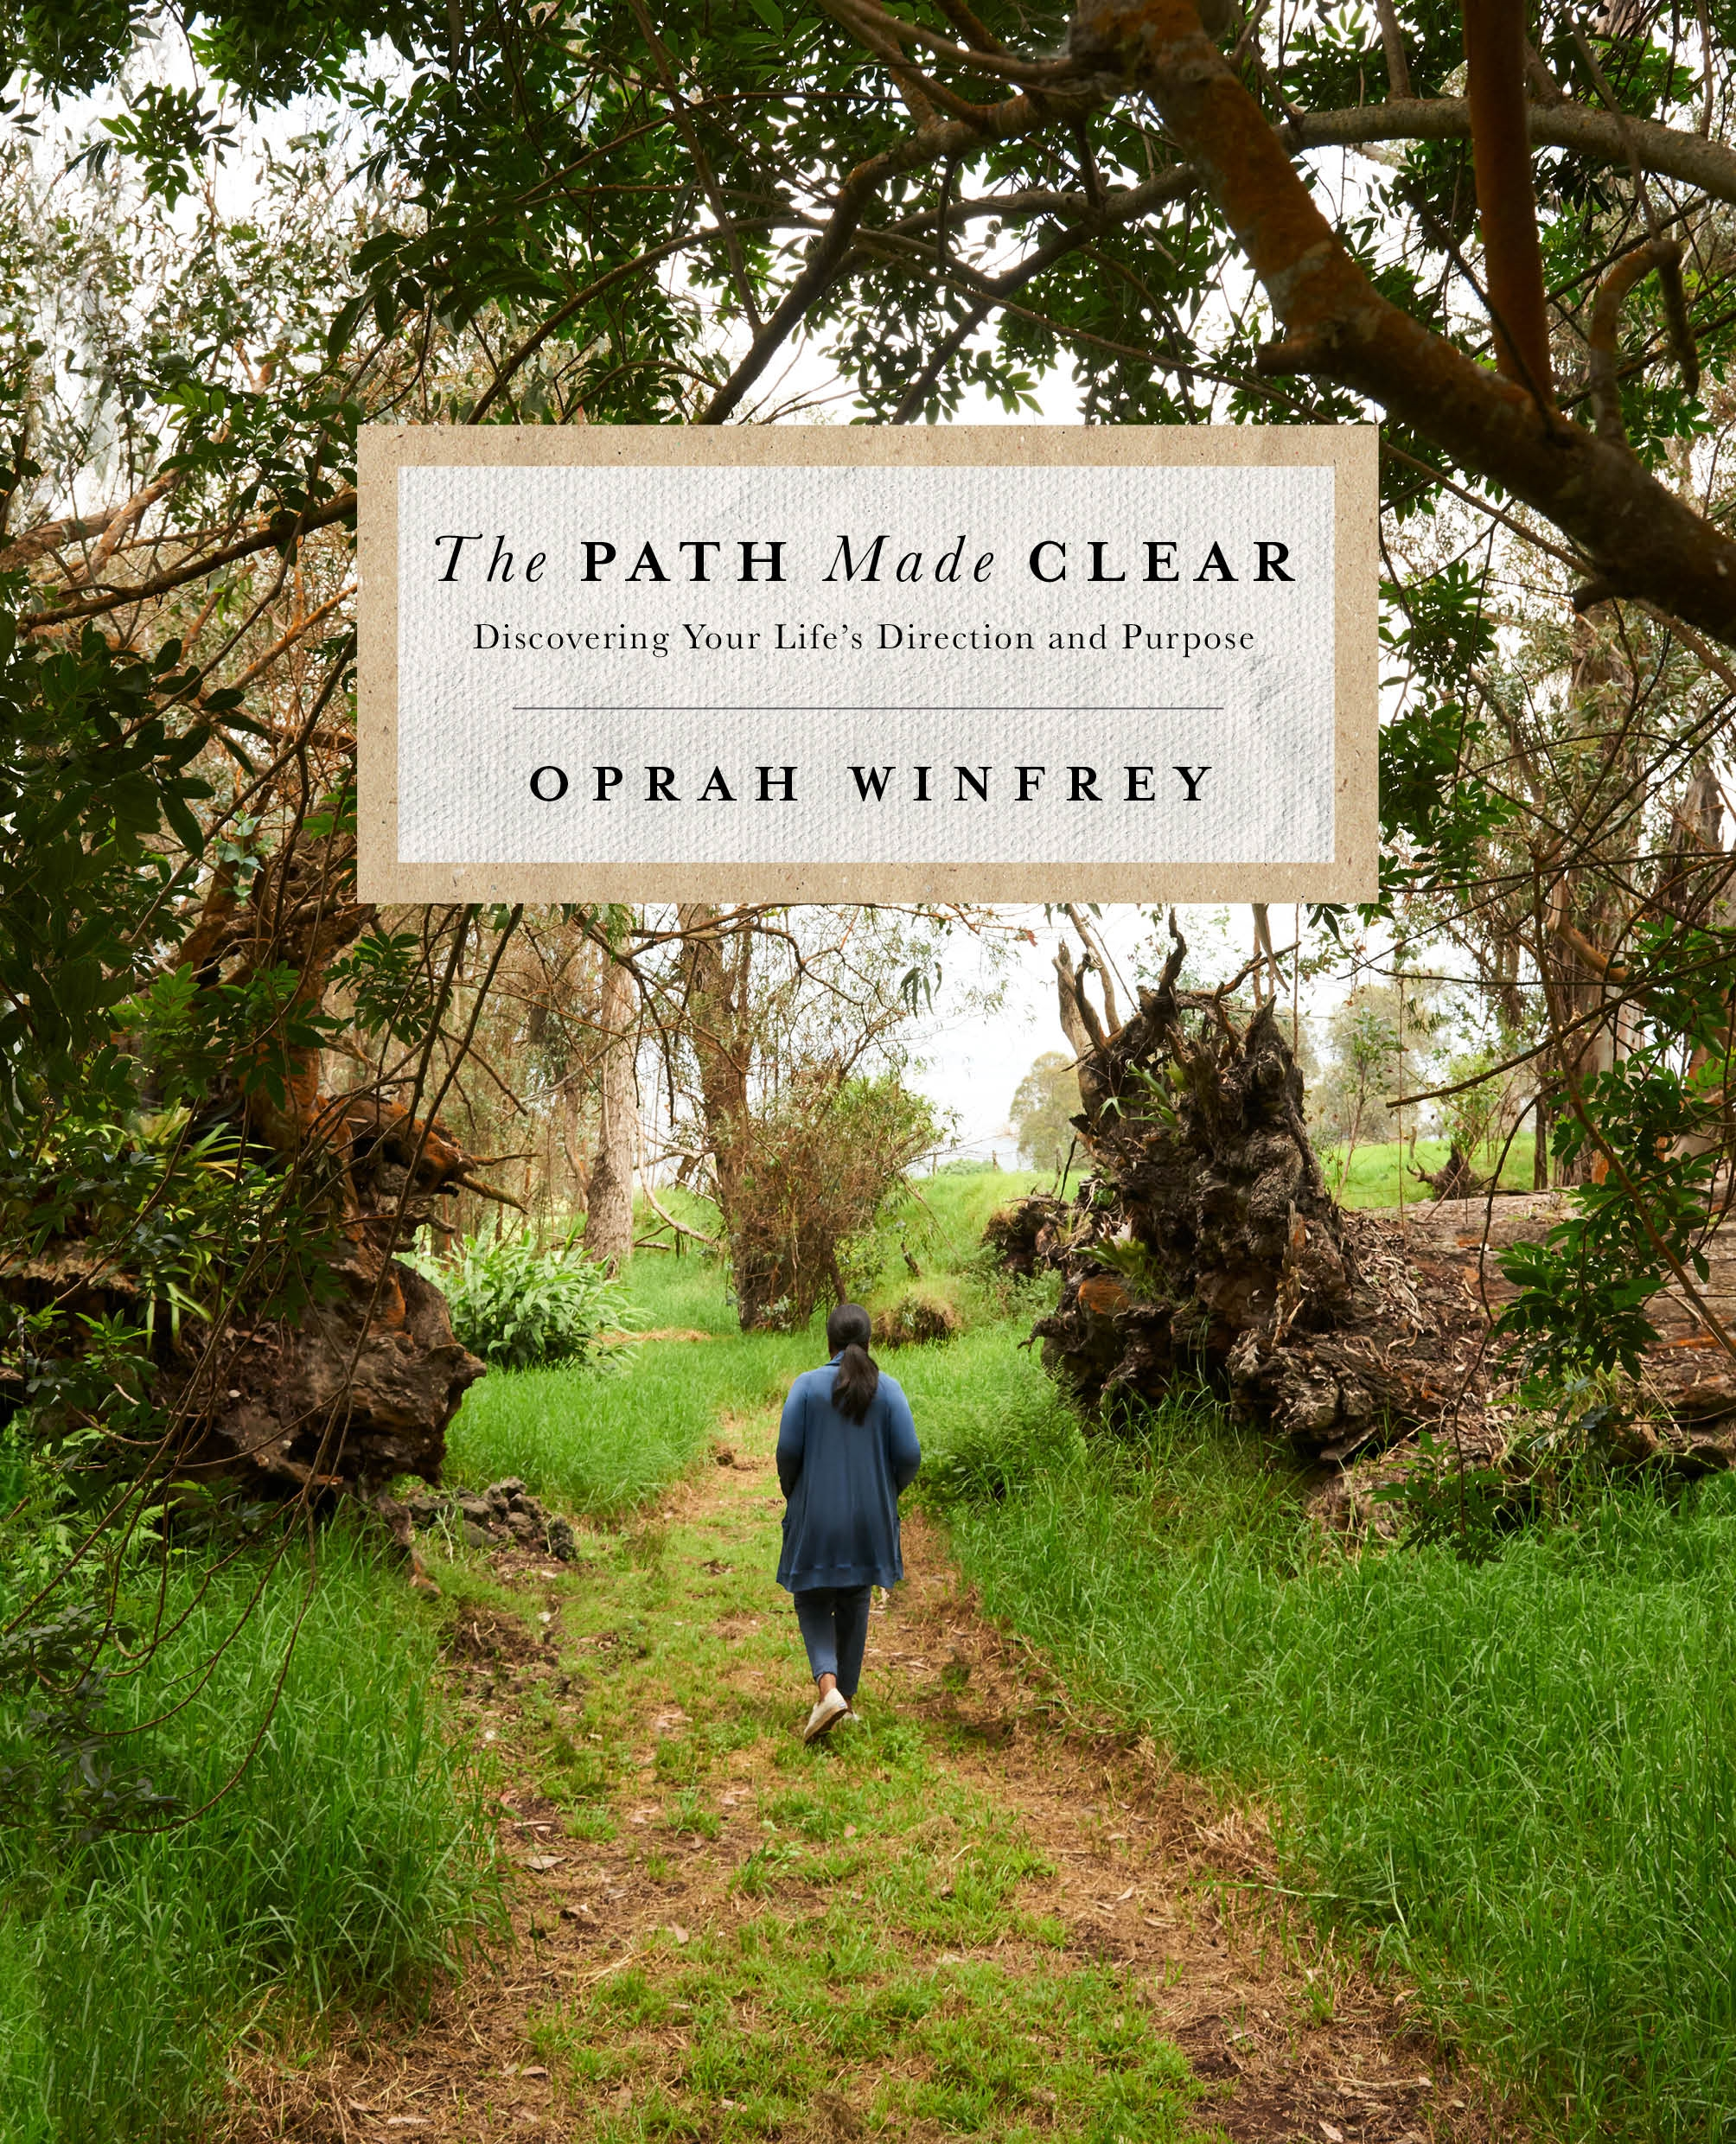 The Path Made Clear Discovering Your Life's Direction and Purpose